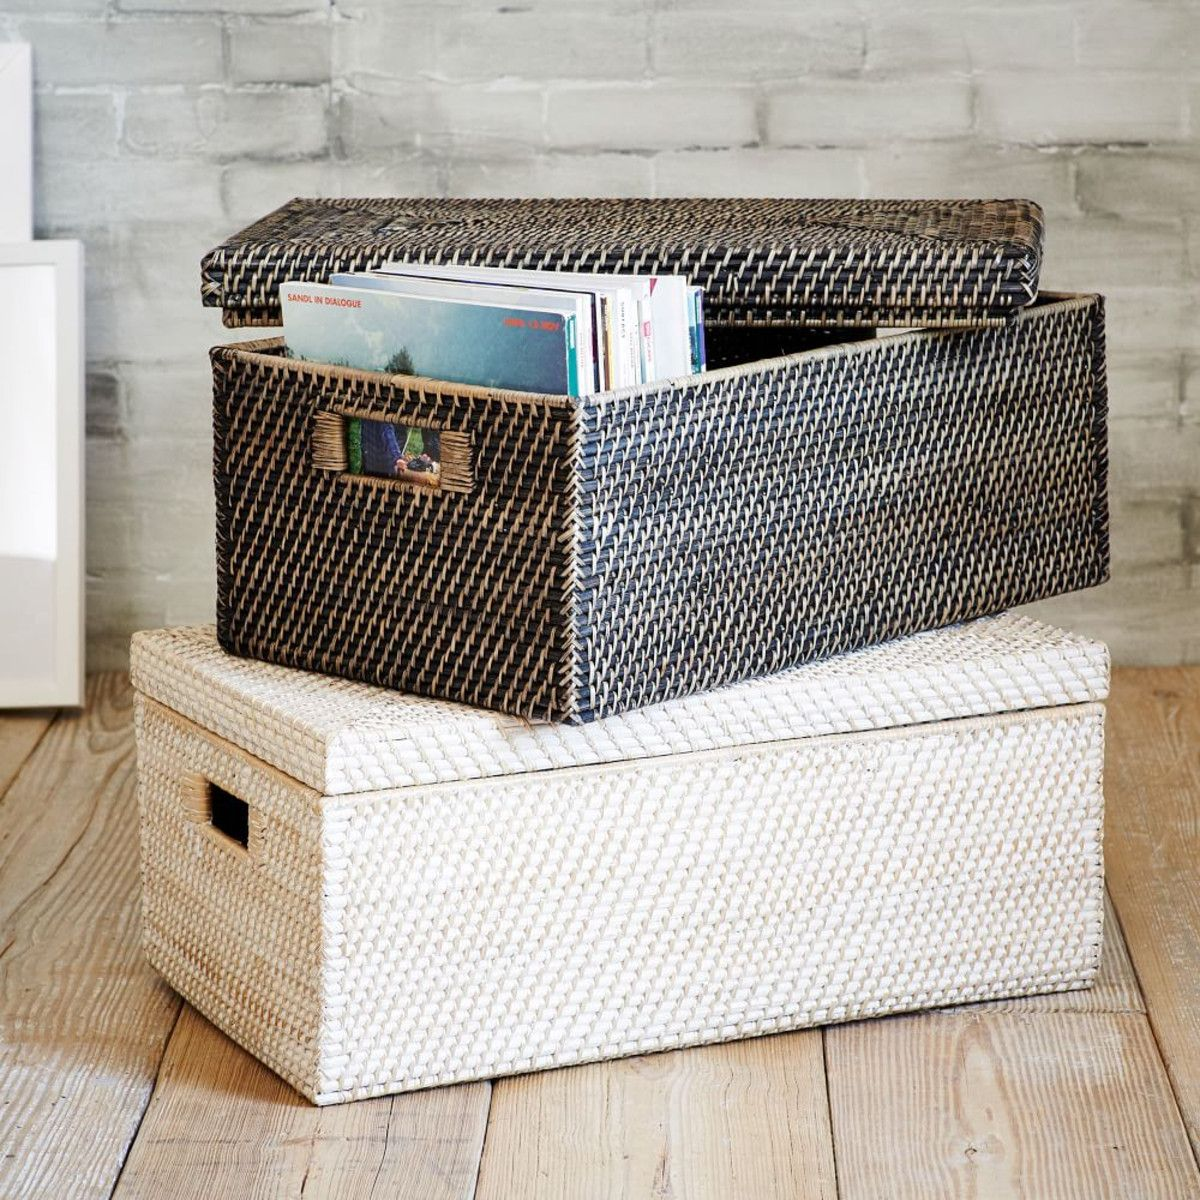 Home underbed storage baskets wicker underbed storage basket - To Put At Entry On Bottom Shelf Although May Just Turn Into A Black Hole Of Lost Forgotten Mail Modern Weave Storage Small Lidded Basket